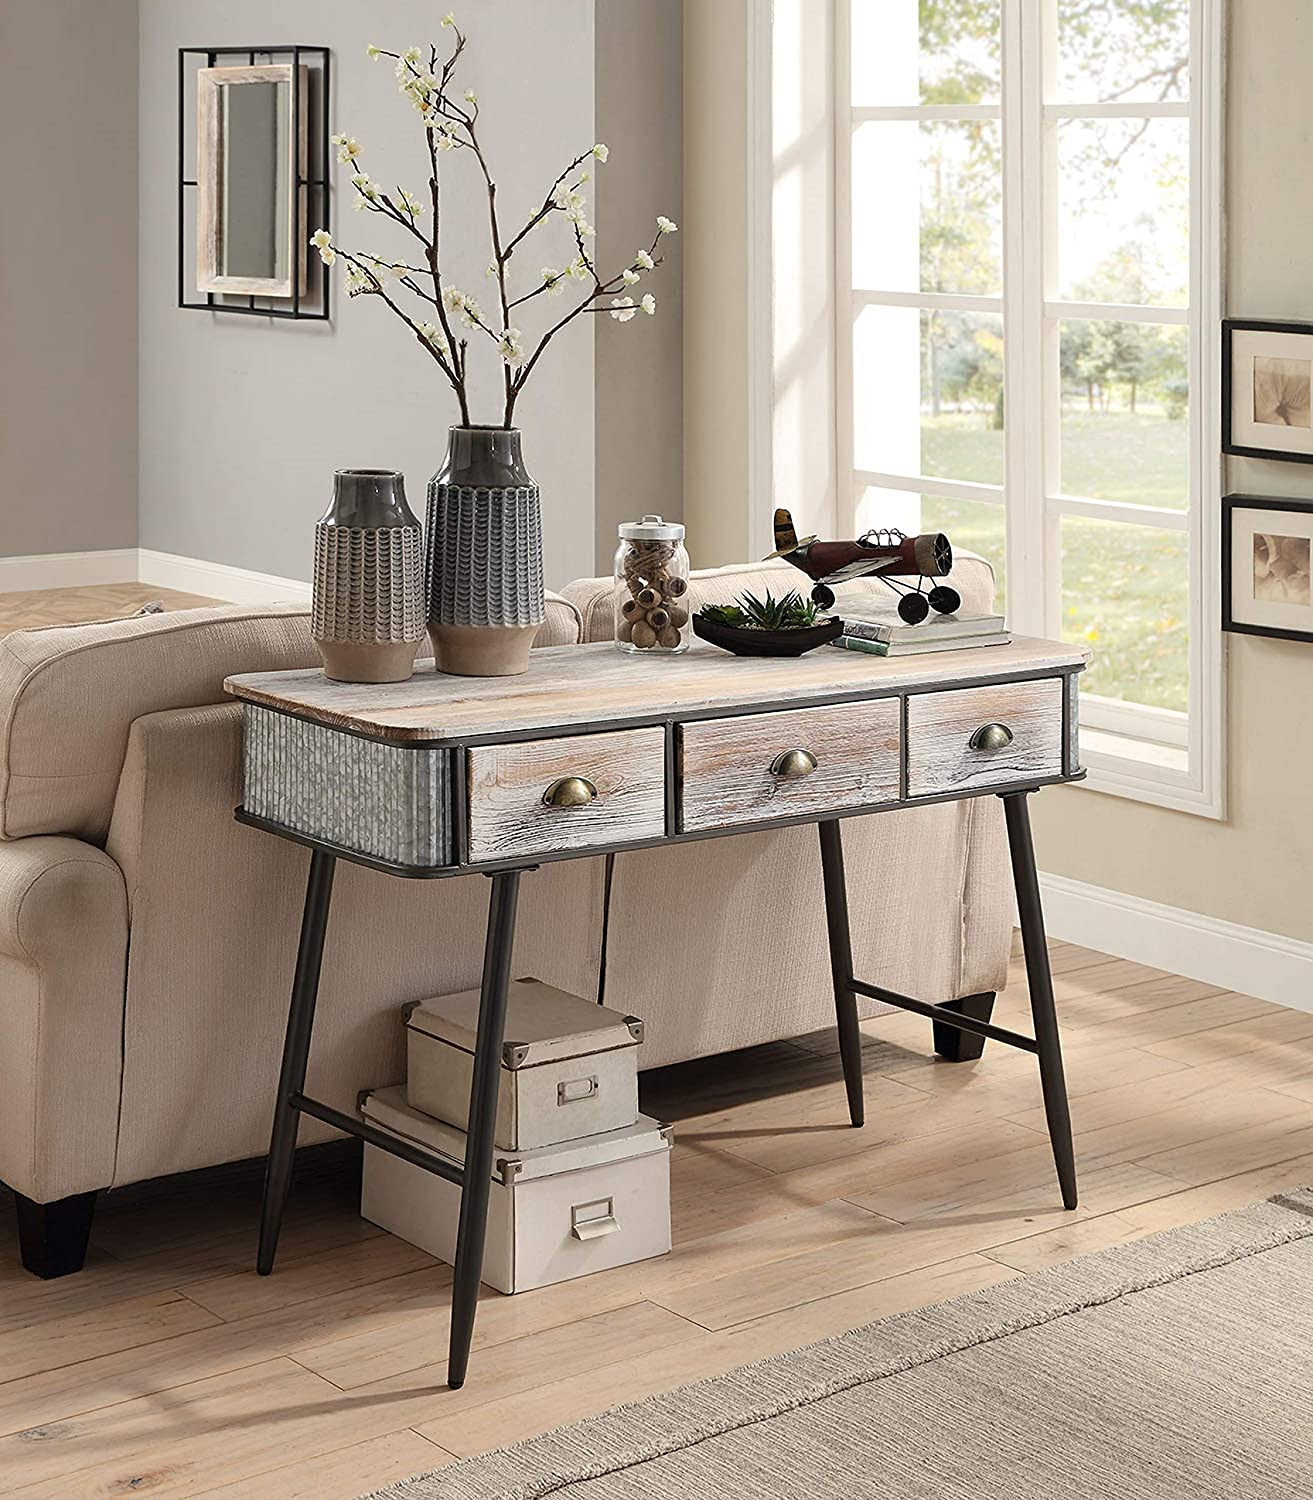 4D Concepts ALTA COLLECTION ENTRY TABLE WITH 3 DRAWERS/Washed Fir Wood w/gray and black metal Desk